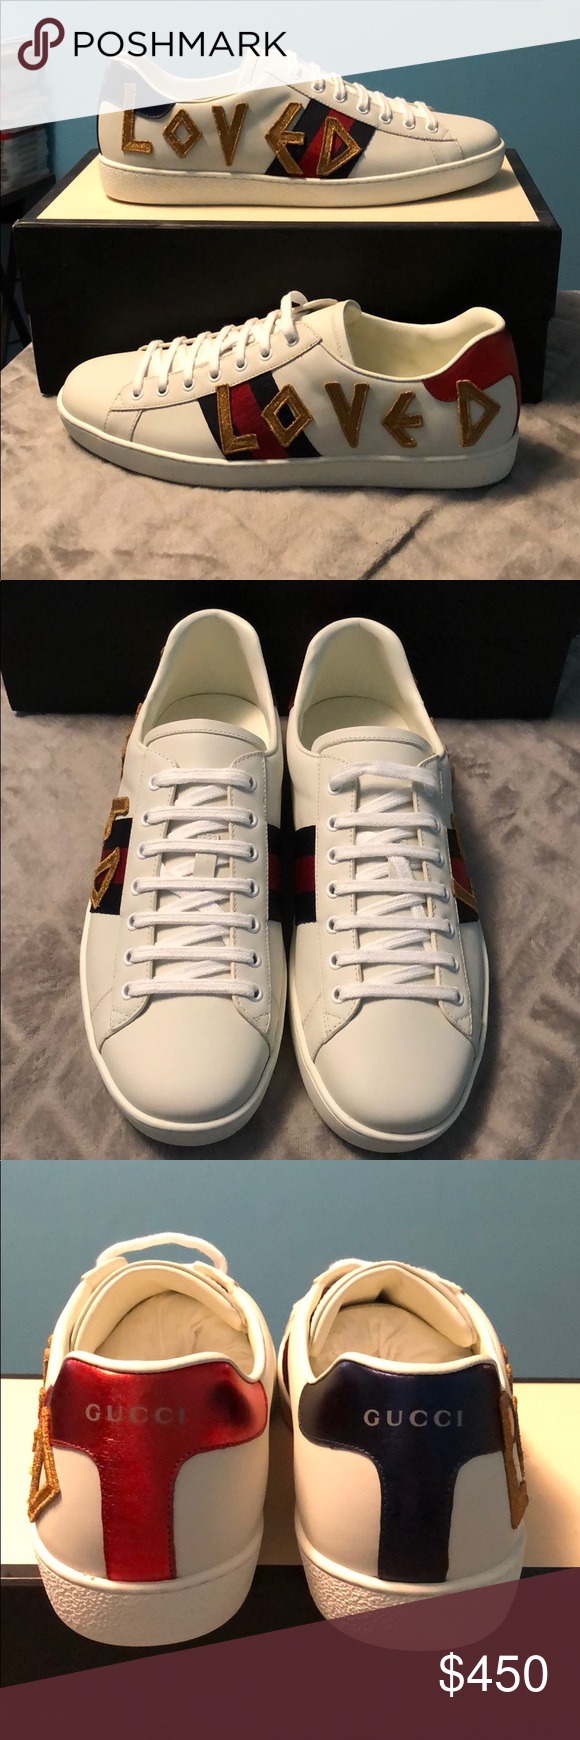 35acf79a69a8 Gucci sneakers Selling a brand new pair of Gucci sneakers. They are a US  size 11. They fit a little small. These DO NOT come with the original box  but I ...